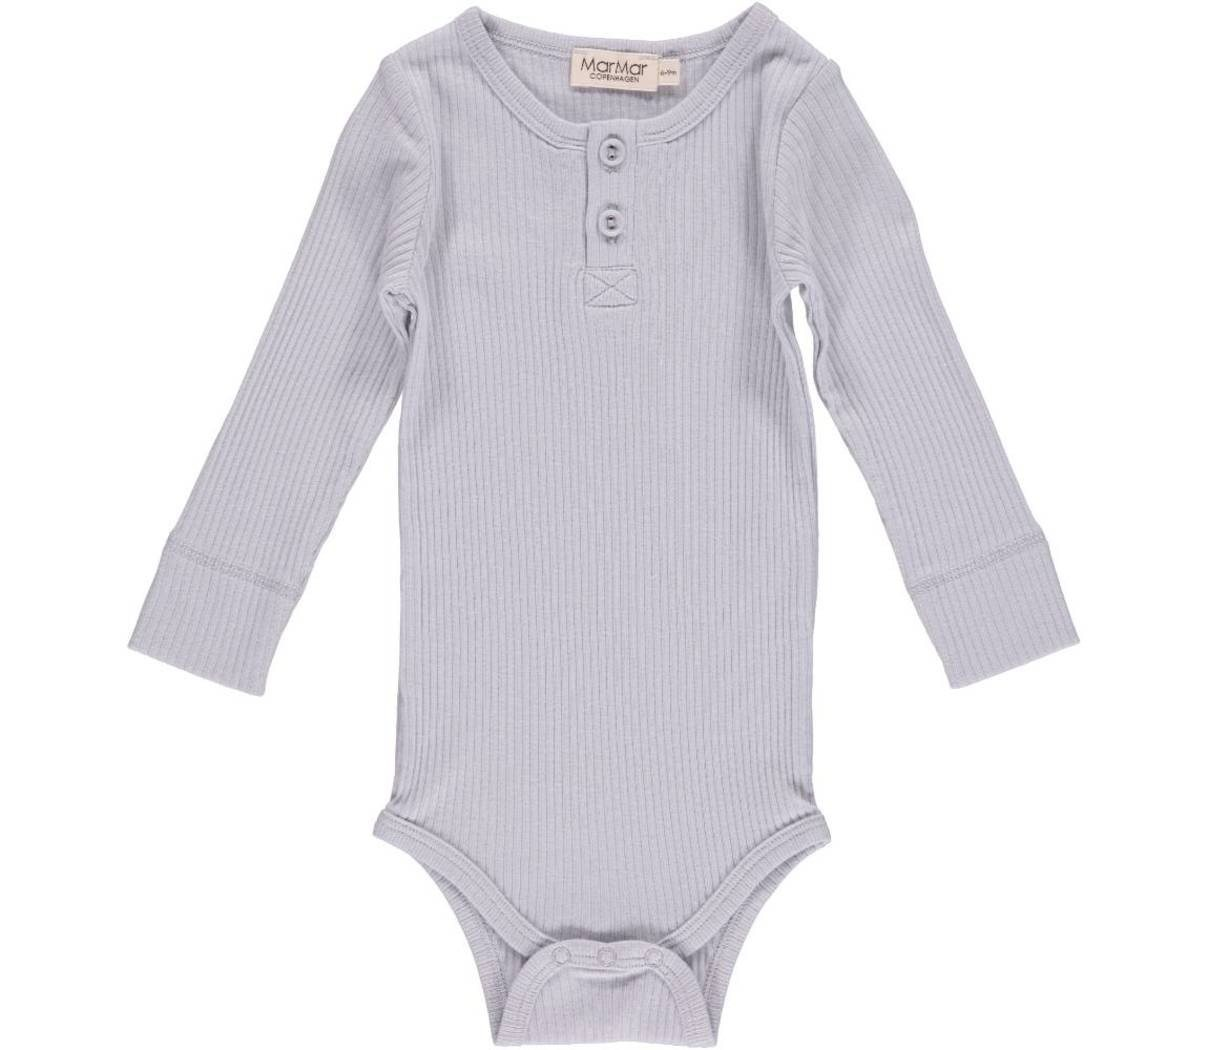 Body LS Modal Pale Blue - 62 (Rek pris: 245kr)